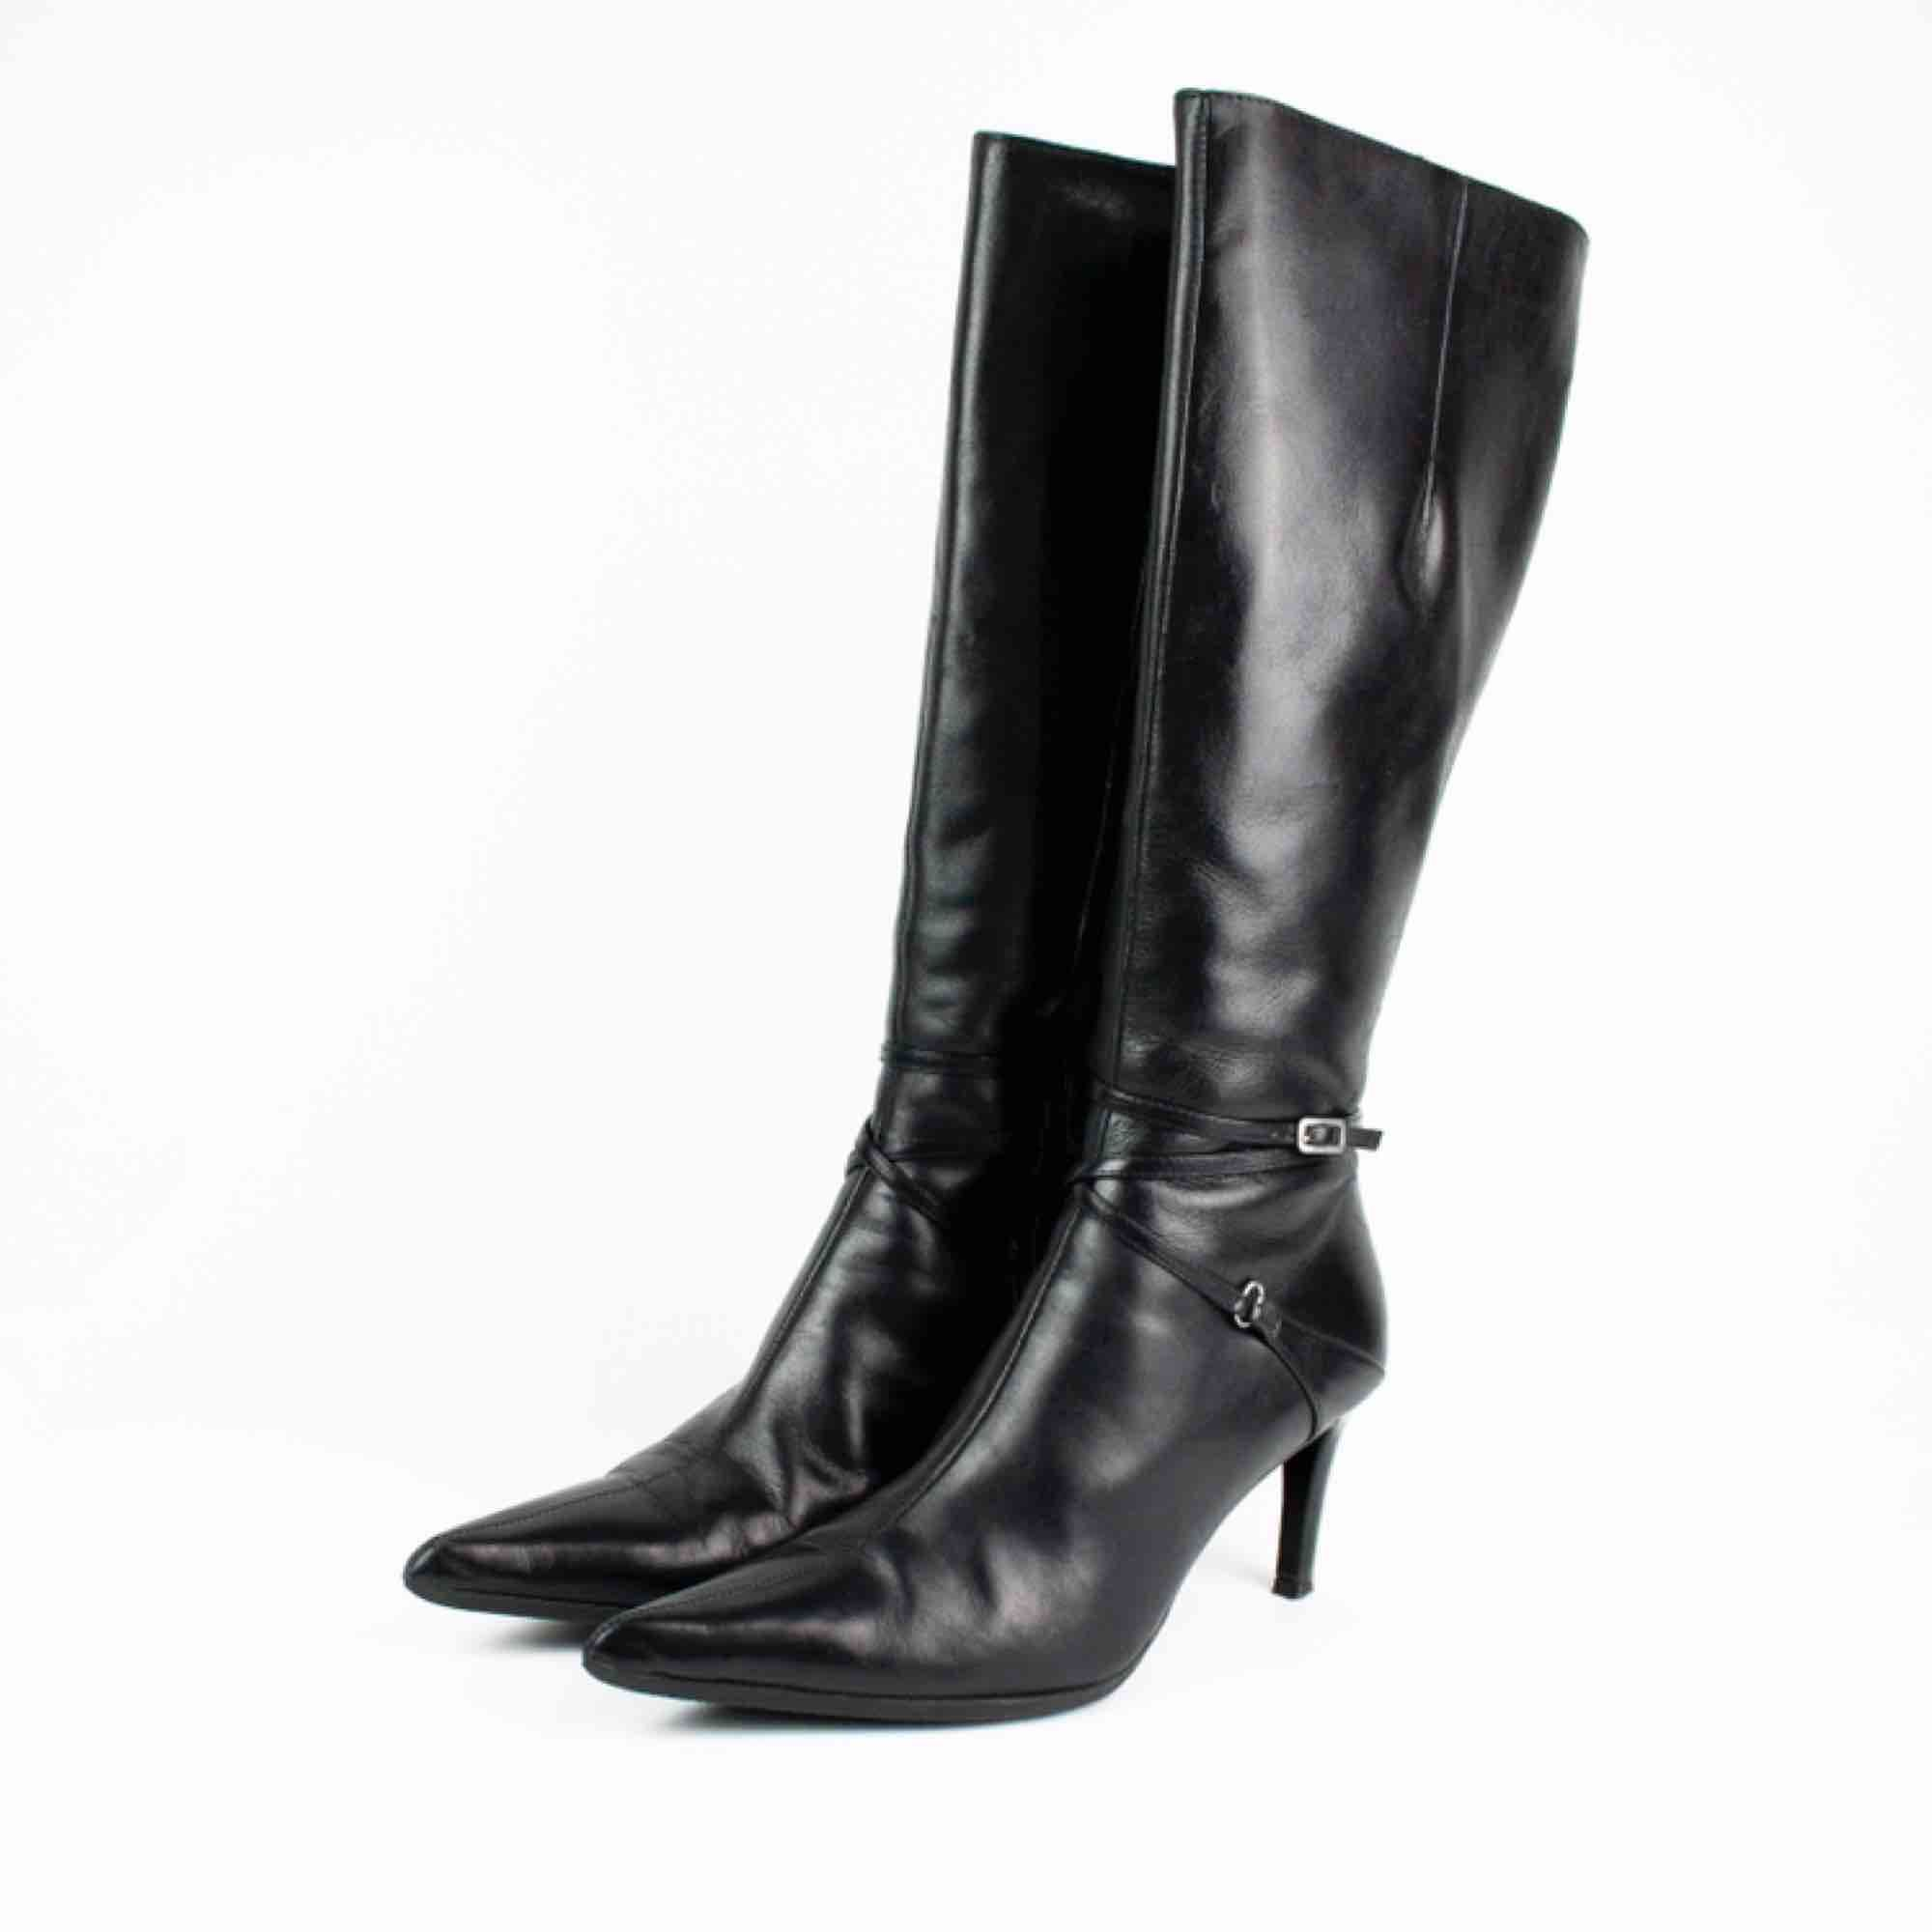 Vintage real leather knee high pointy toe high heels boots in black Label: 40, feels a bit smaller though, like 39-39.5 (note it tried only by a person with size 38 to judge) Free shipping! Read the full description at our website majorunit.com No returns. Skor.